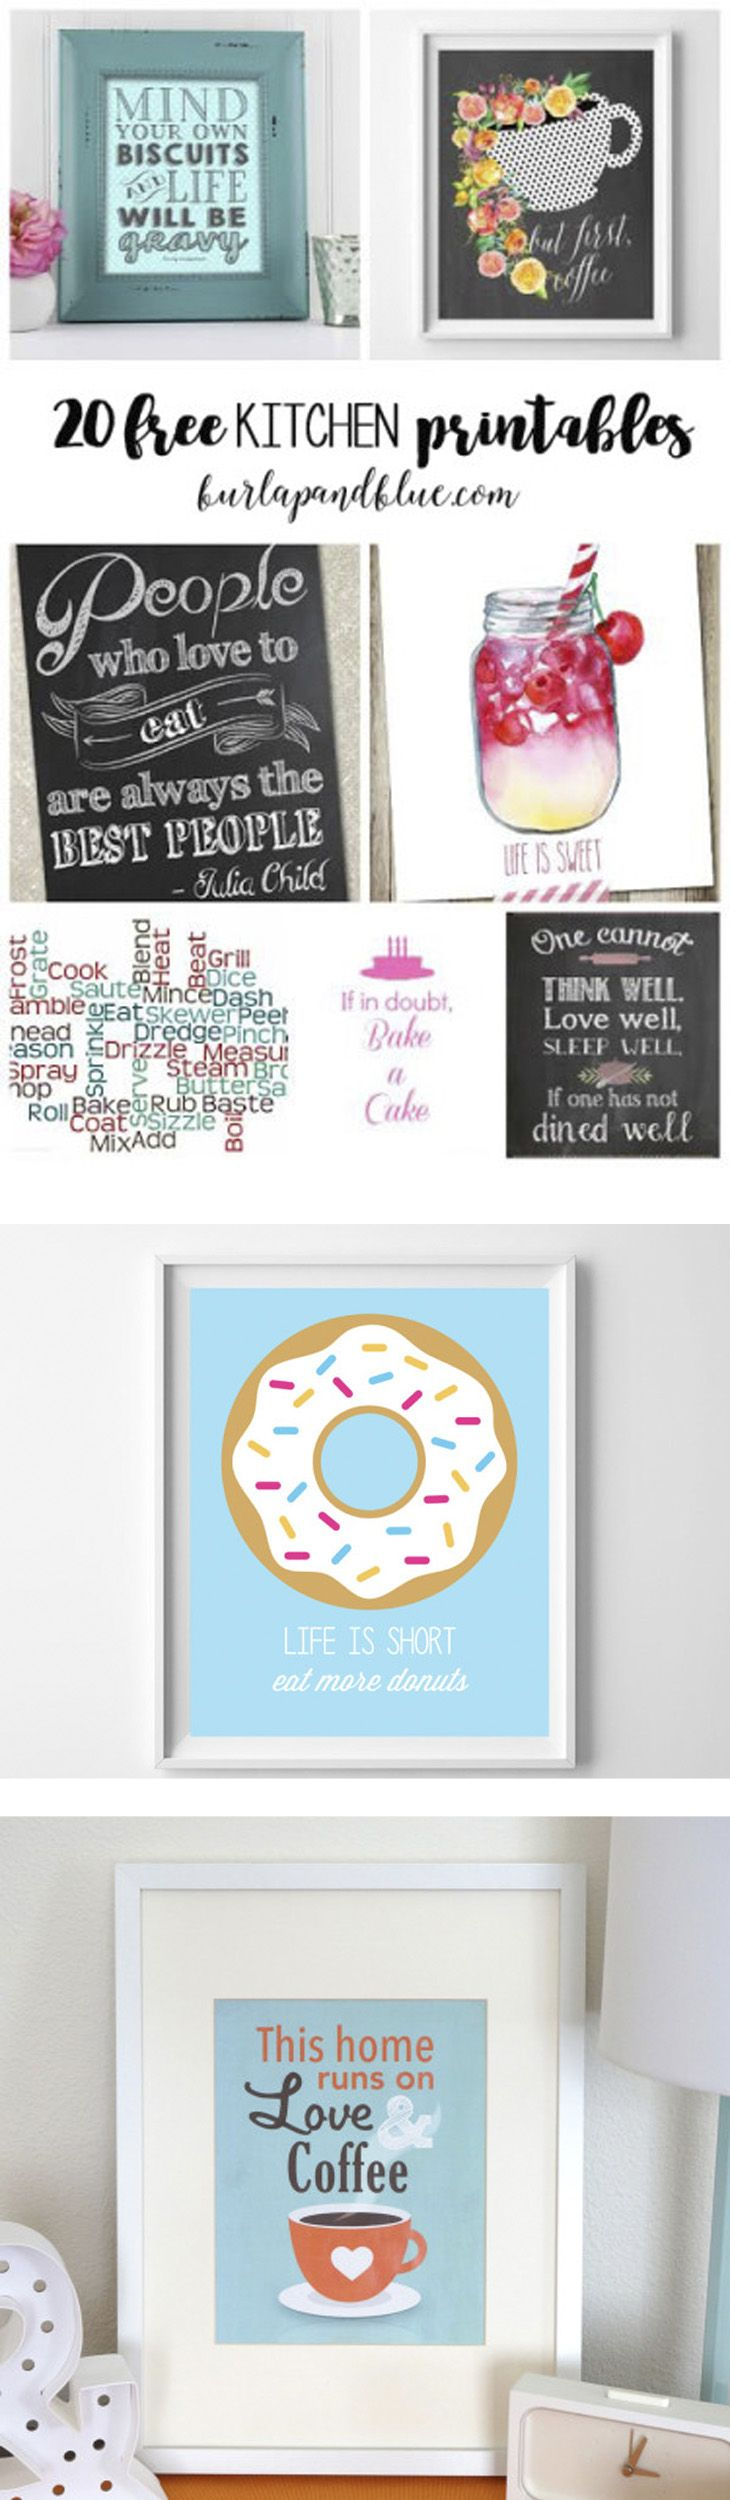 20 free kitchen printables! update your kitchen with free printable art!